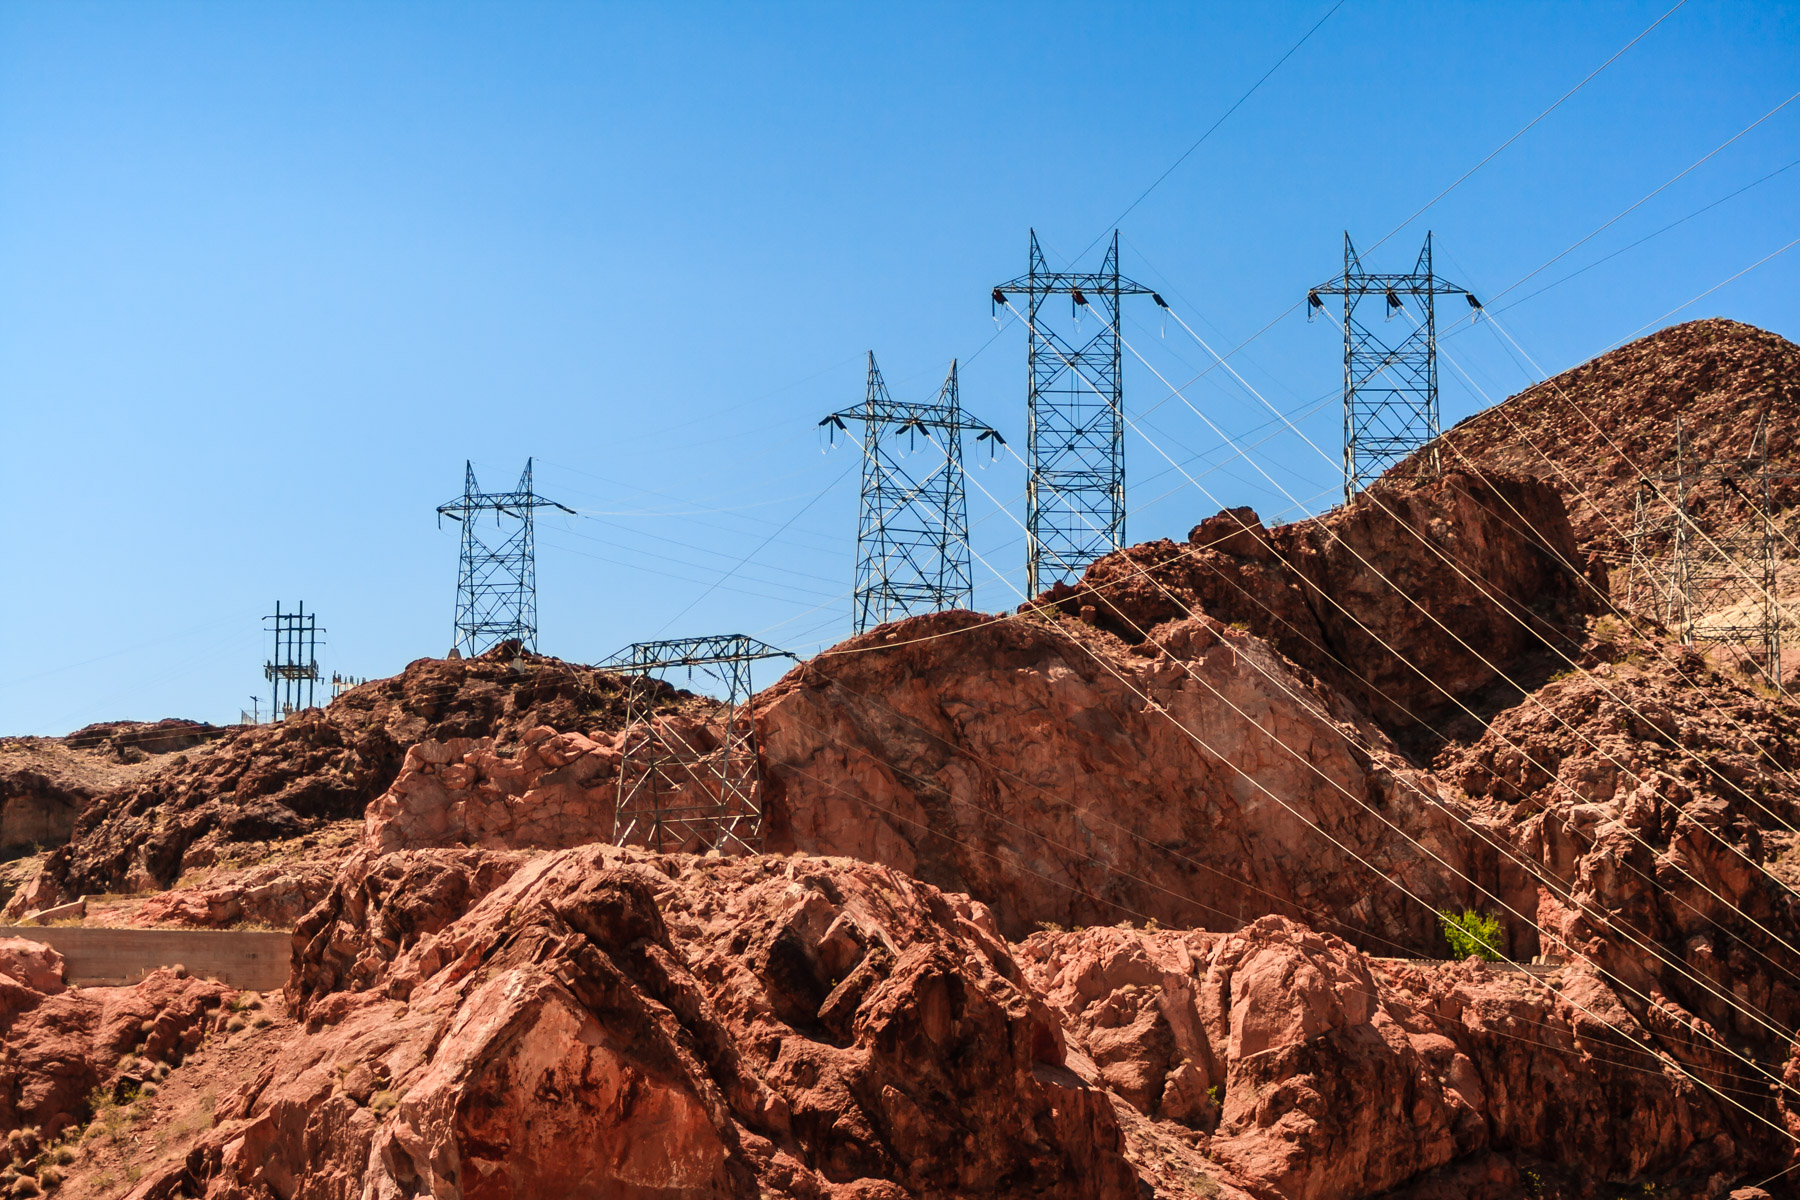 These power lines carry freshly-generated electricity away from Hoover Dam to distant destinations.